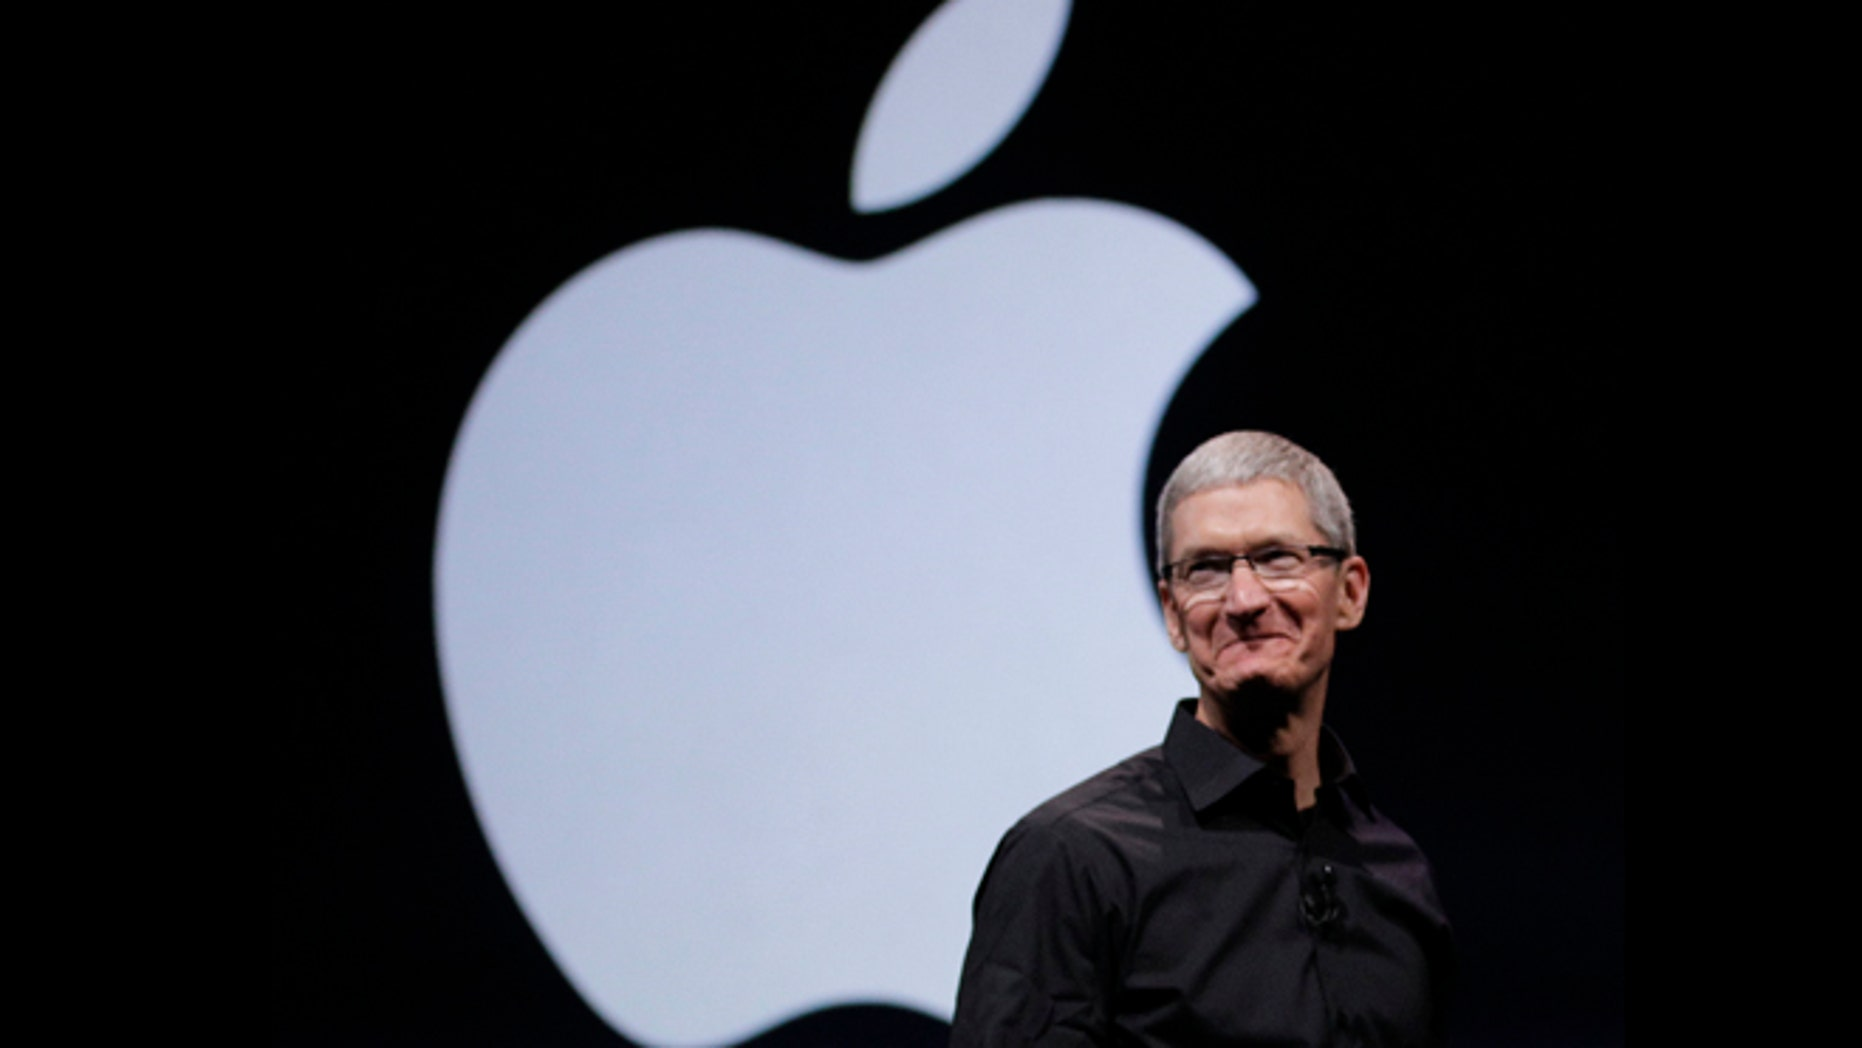 Sept. 12, 2012: Apple CEO Tim Cook walks on stage at the beginning of an event in San Francisco, where the company is expected to announce a new iPhone.